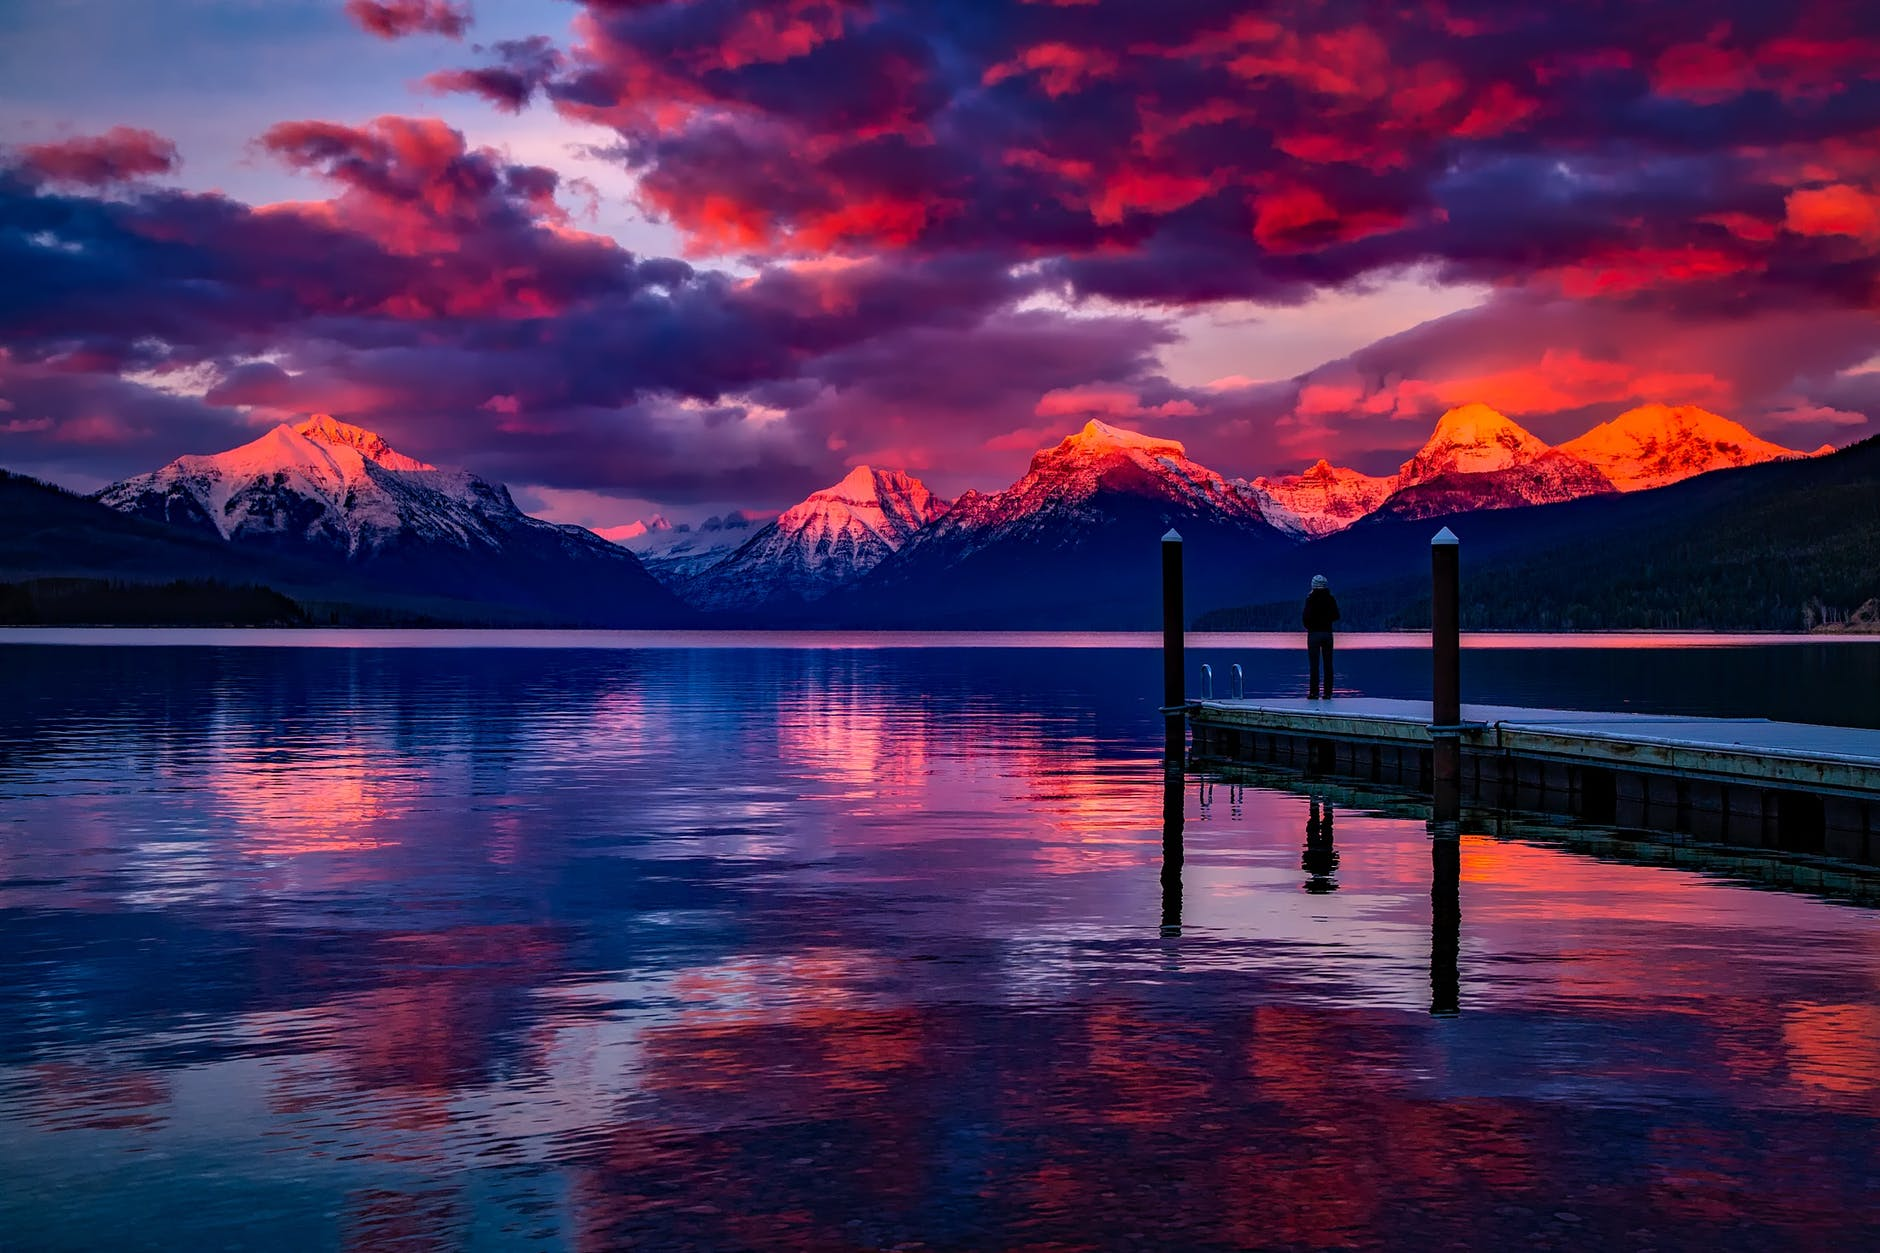 Sunset over mountains. Purple, red and orange sky. Snow-capped peaks look over a vast, still lake. A man looks at the scenic beauty on a landing near the lake.